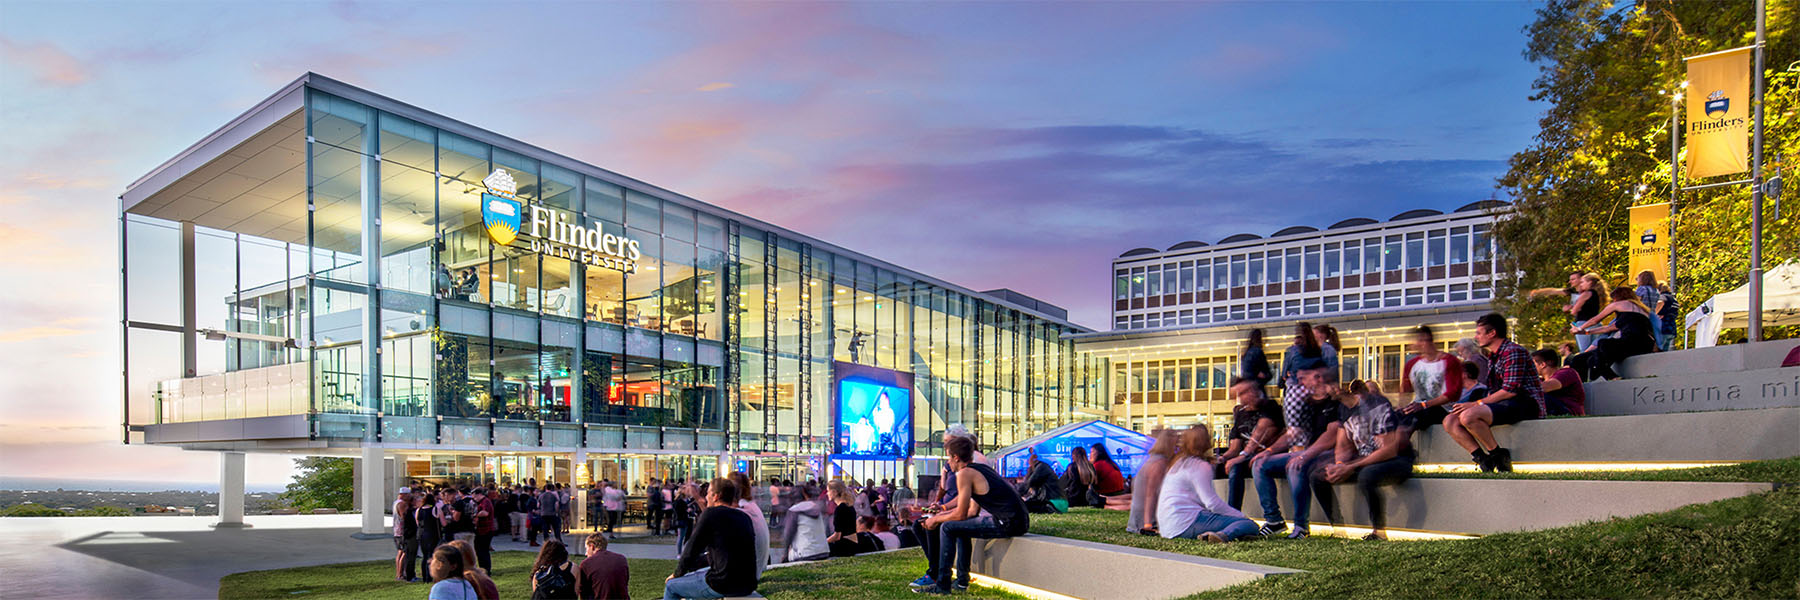 Senior Research Fellow in The Future of Work at Flinders University